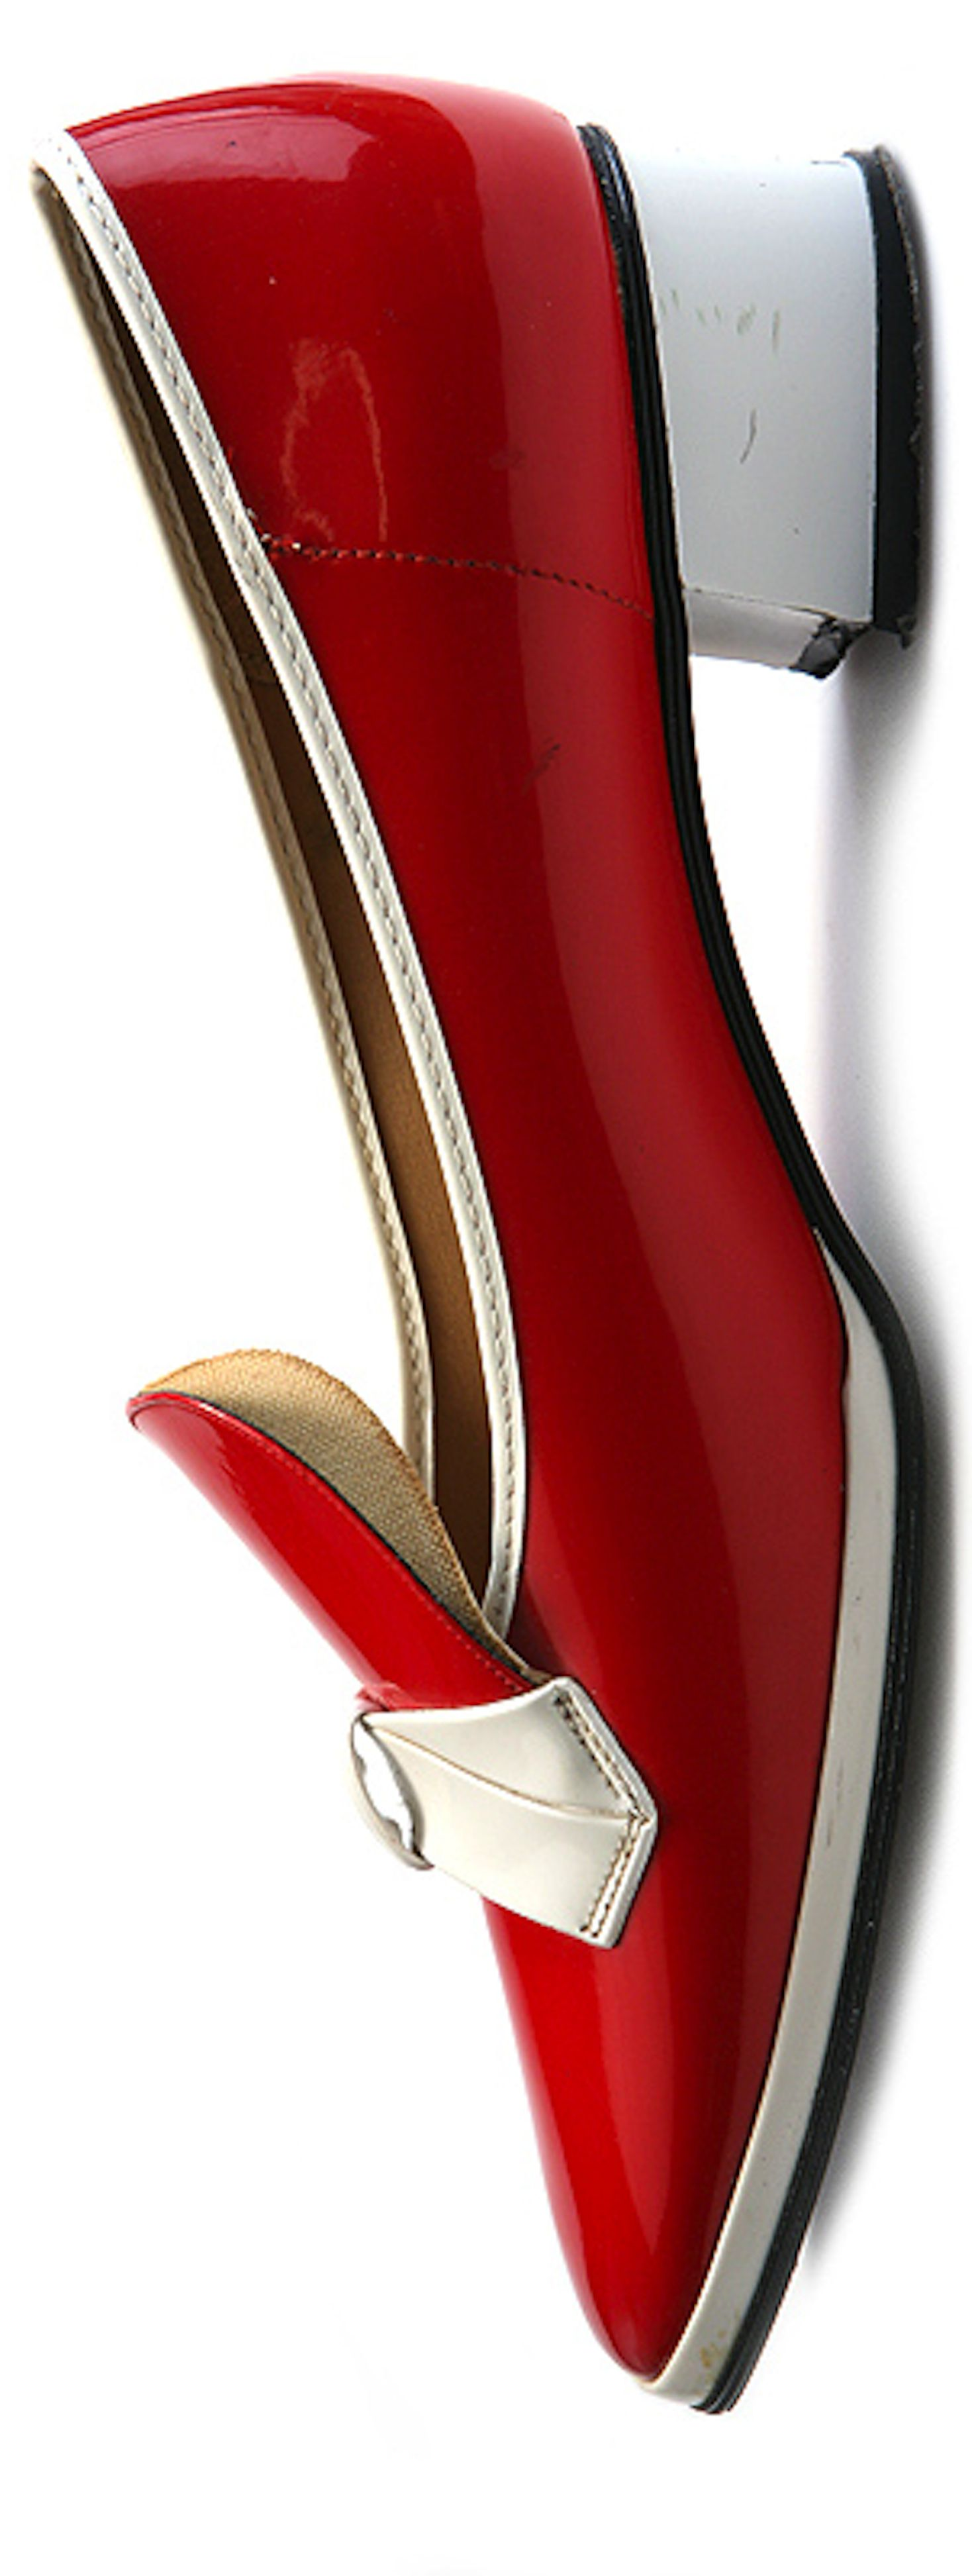 Vintage shoes - Joyce Happies - Red and white patent leather low heel shoes - 1960s - Great Britain